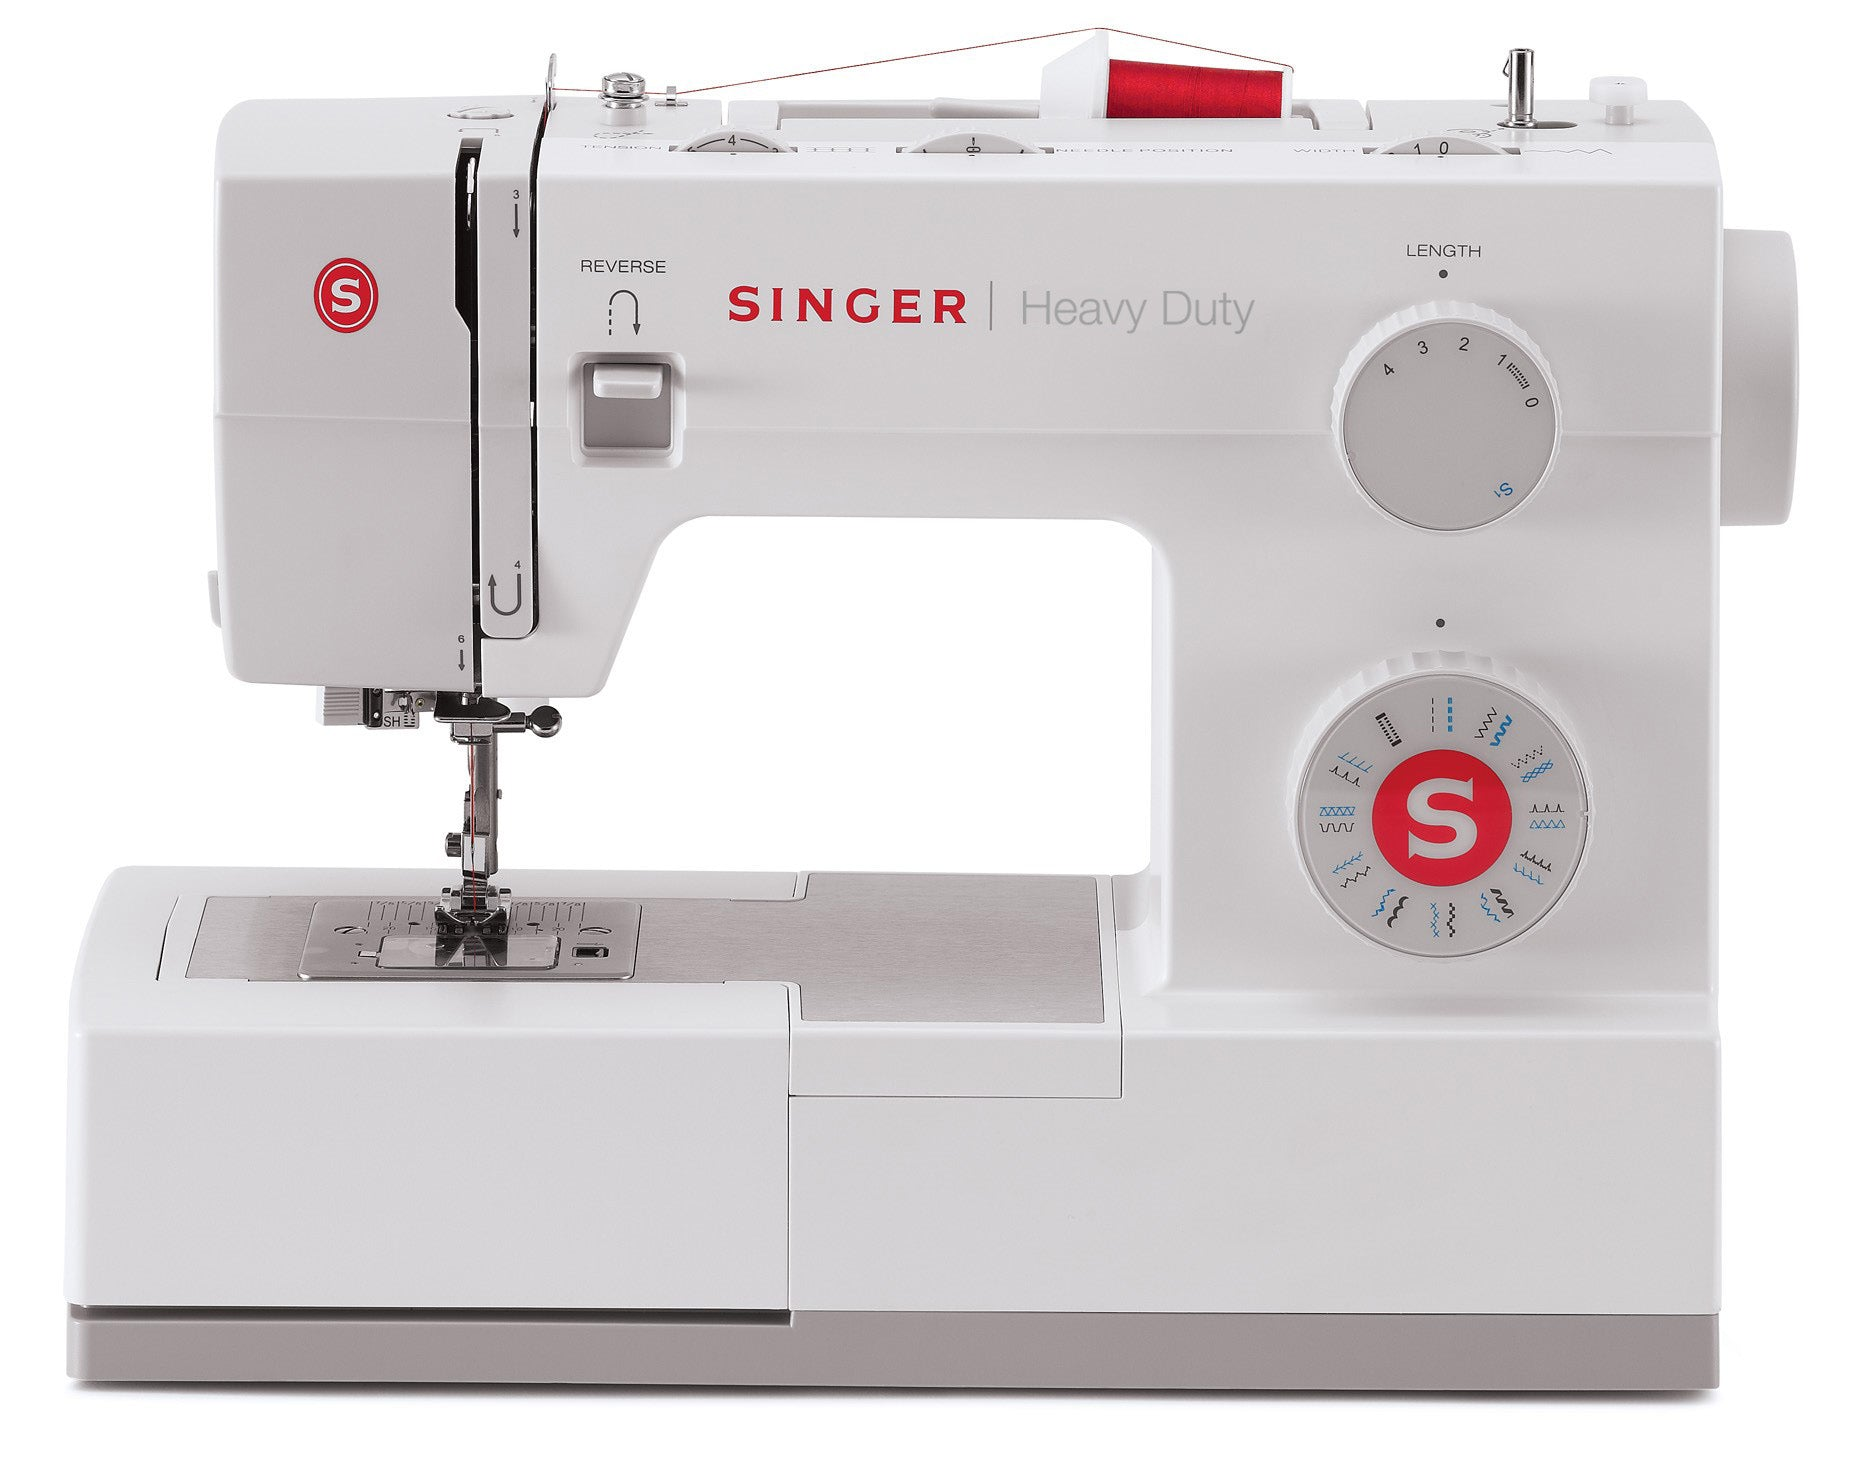 Singer Heavy Duty 5523 - Quilt Edition inc. Quilt Edition inc. Even Feed Walking Foot (White and Grey) - Preorder for November Delivery